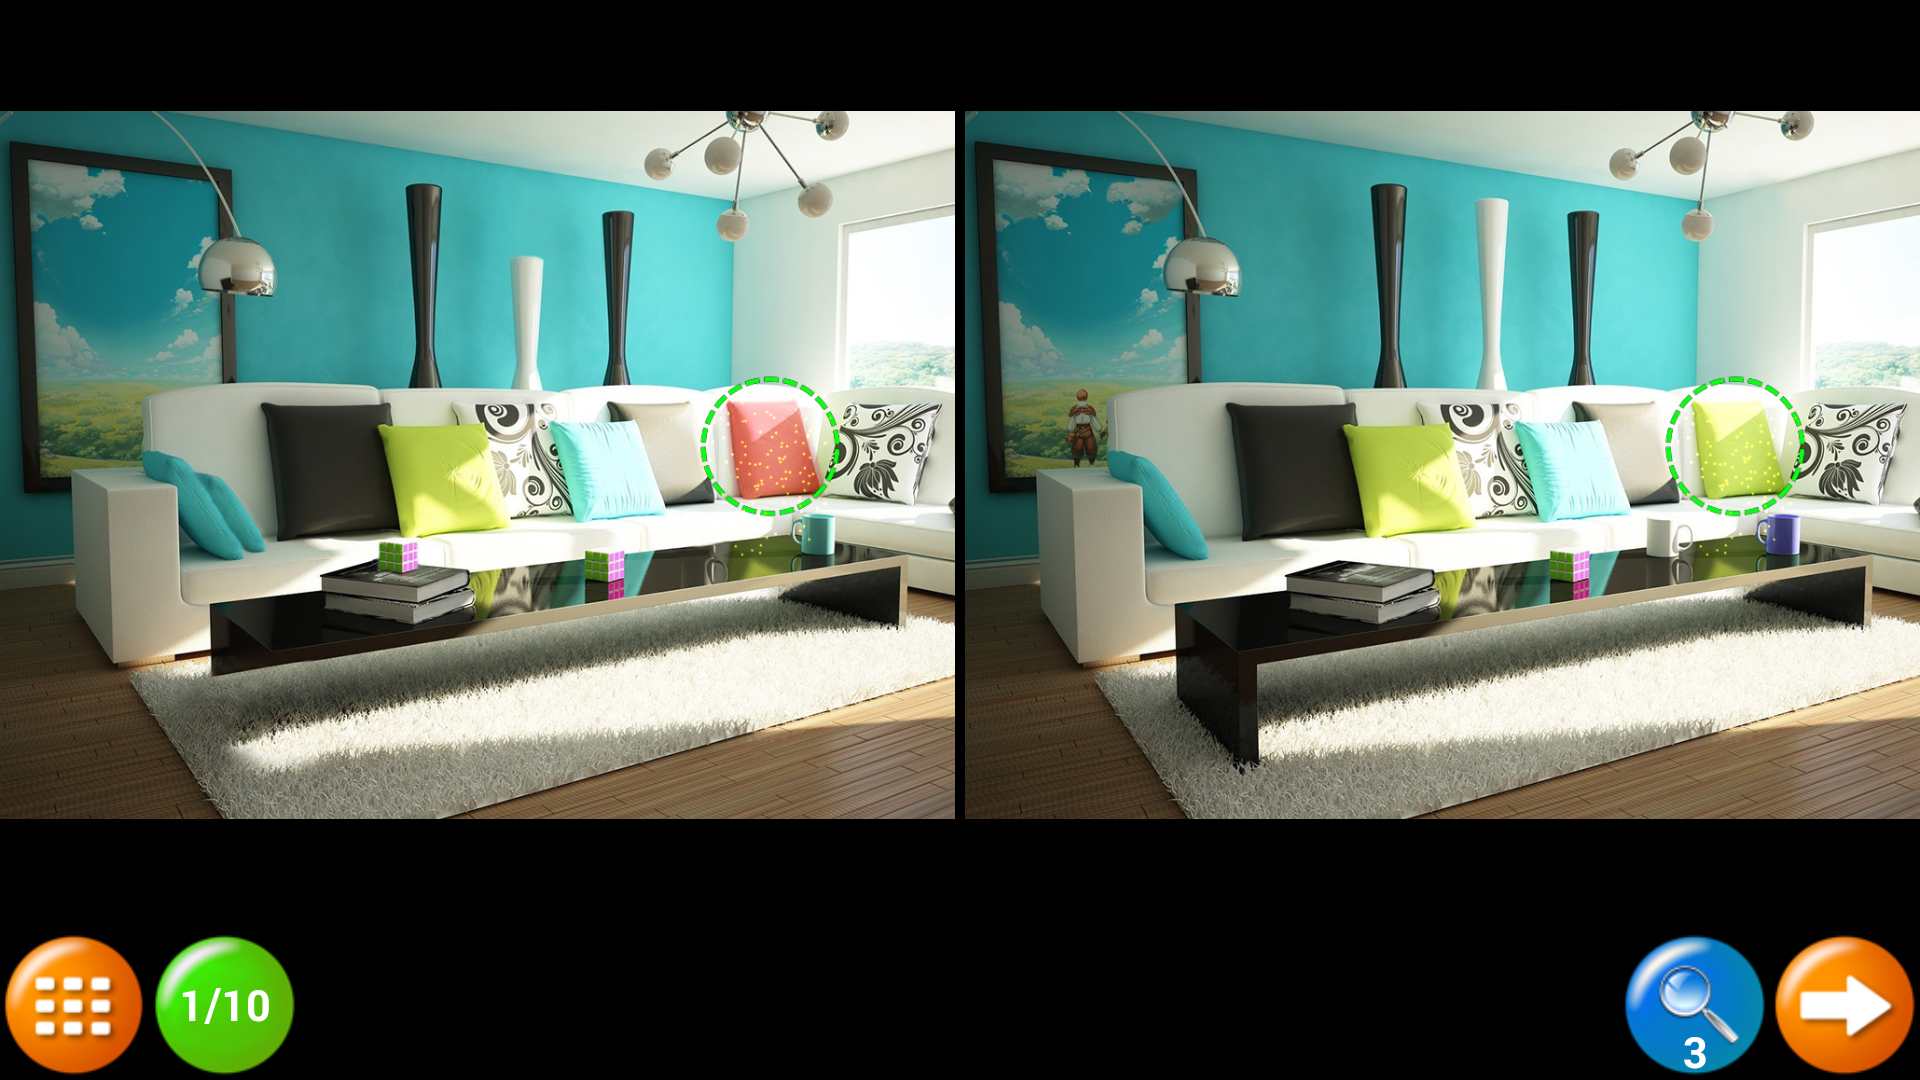 Amazon.com: Find The Differences Rooms: Appstore For Android